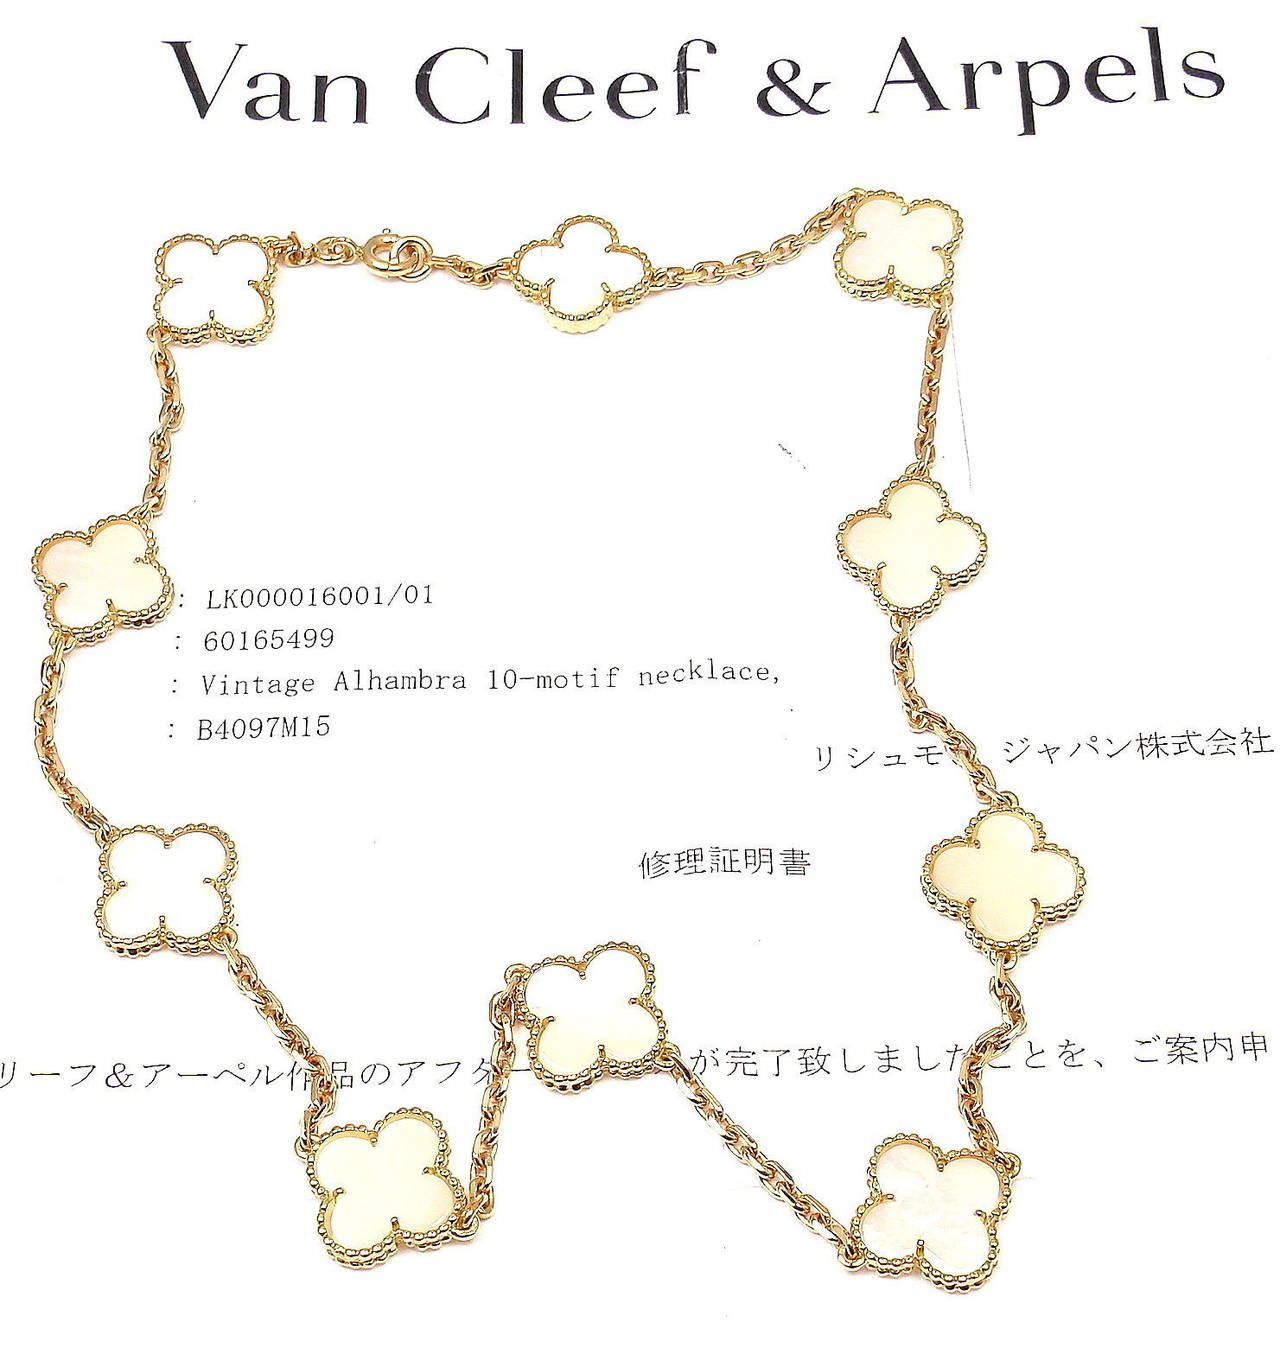 Van Cleef & Arpels Mother Of Pearl Vintage Alhambra Yellow Gold Necklace 5